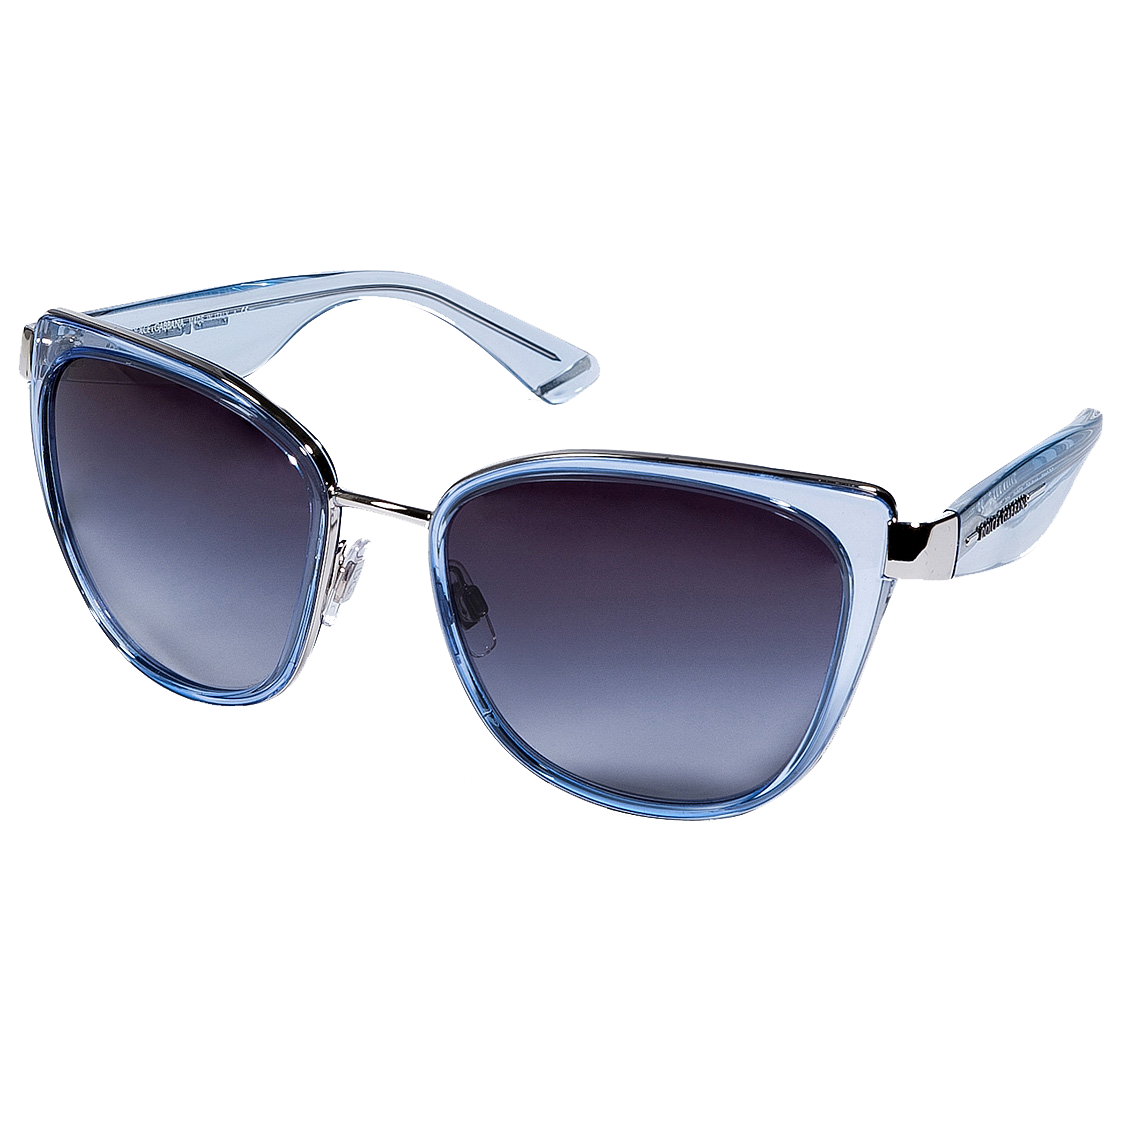 mlg sunglasses no background Wrap Yourself Thin